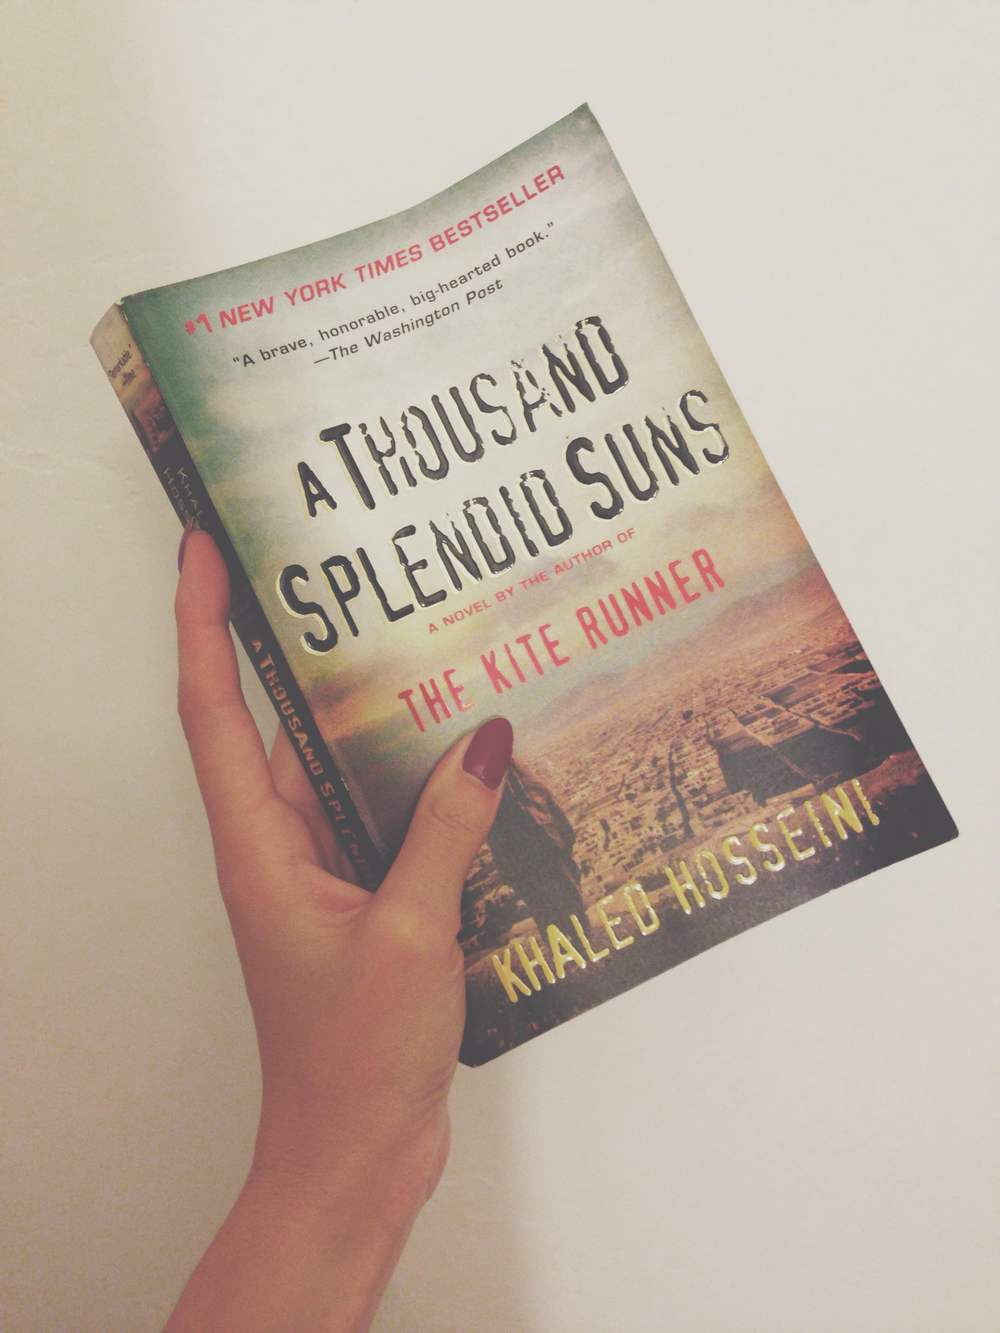 Feels-Design-Studio_A-Thousand-Splendid-Suns-Book-Design-Review-1.jpg